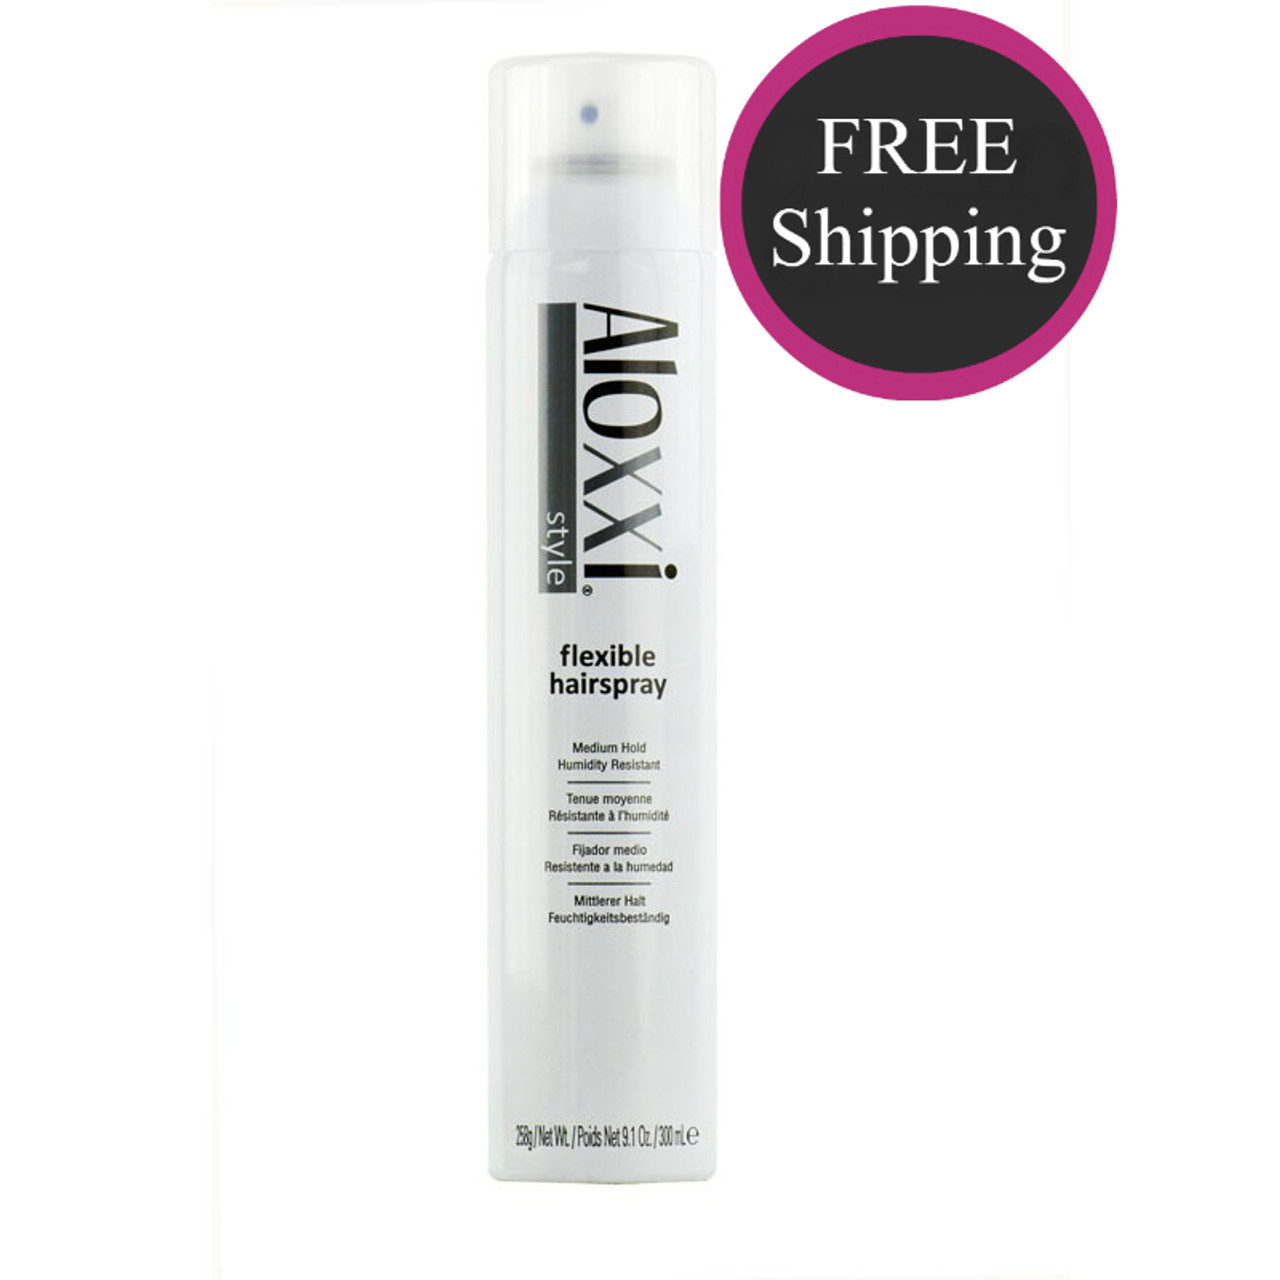 Aloxxi Flexible Hairspray 9.1 oz: Free shipping!